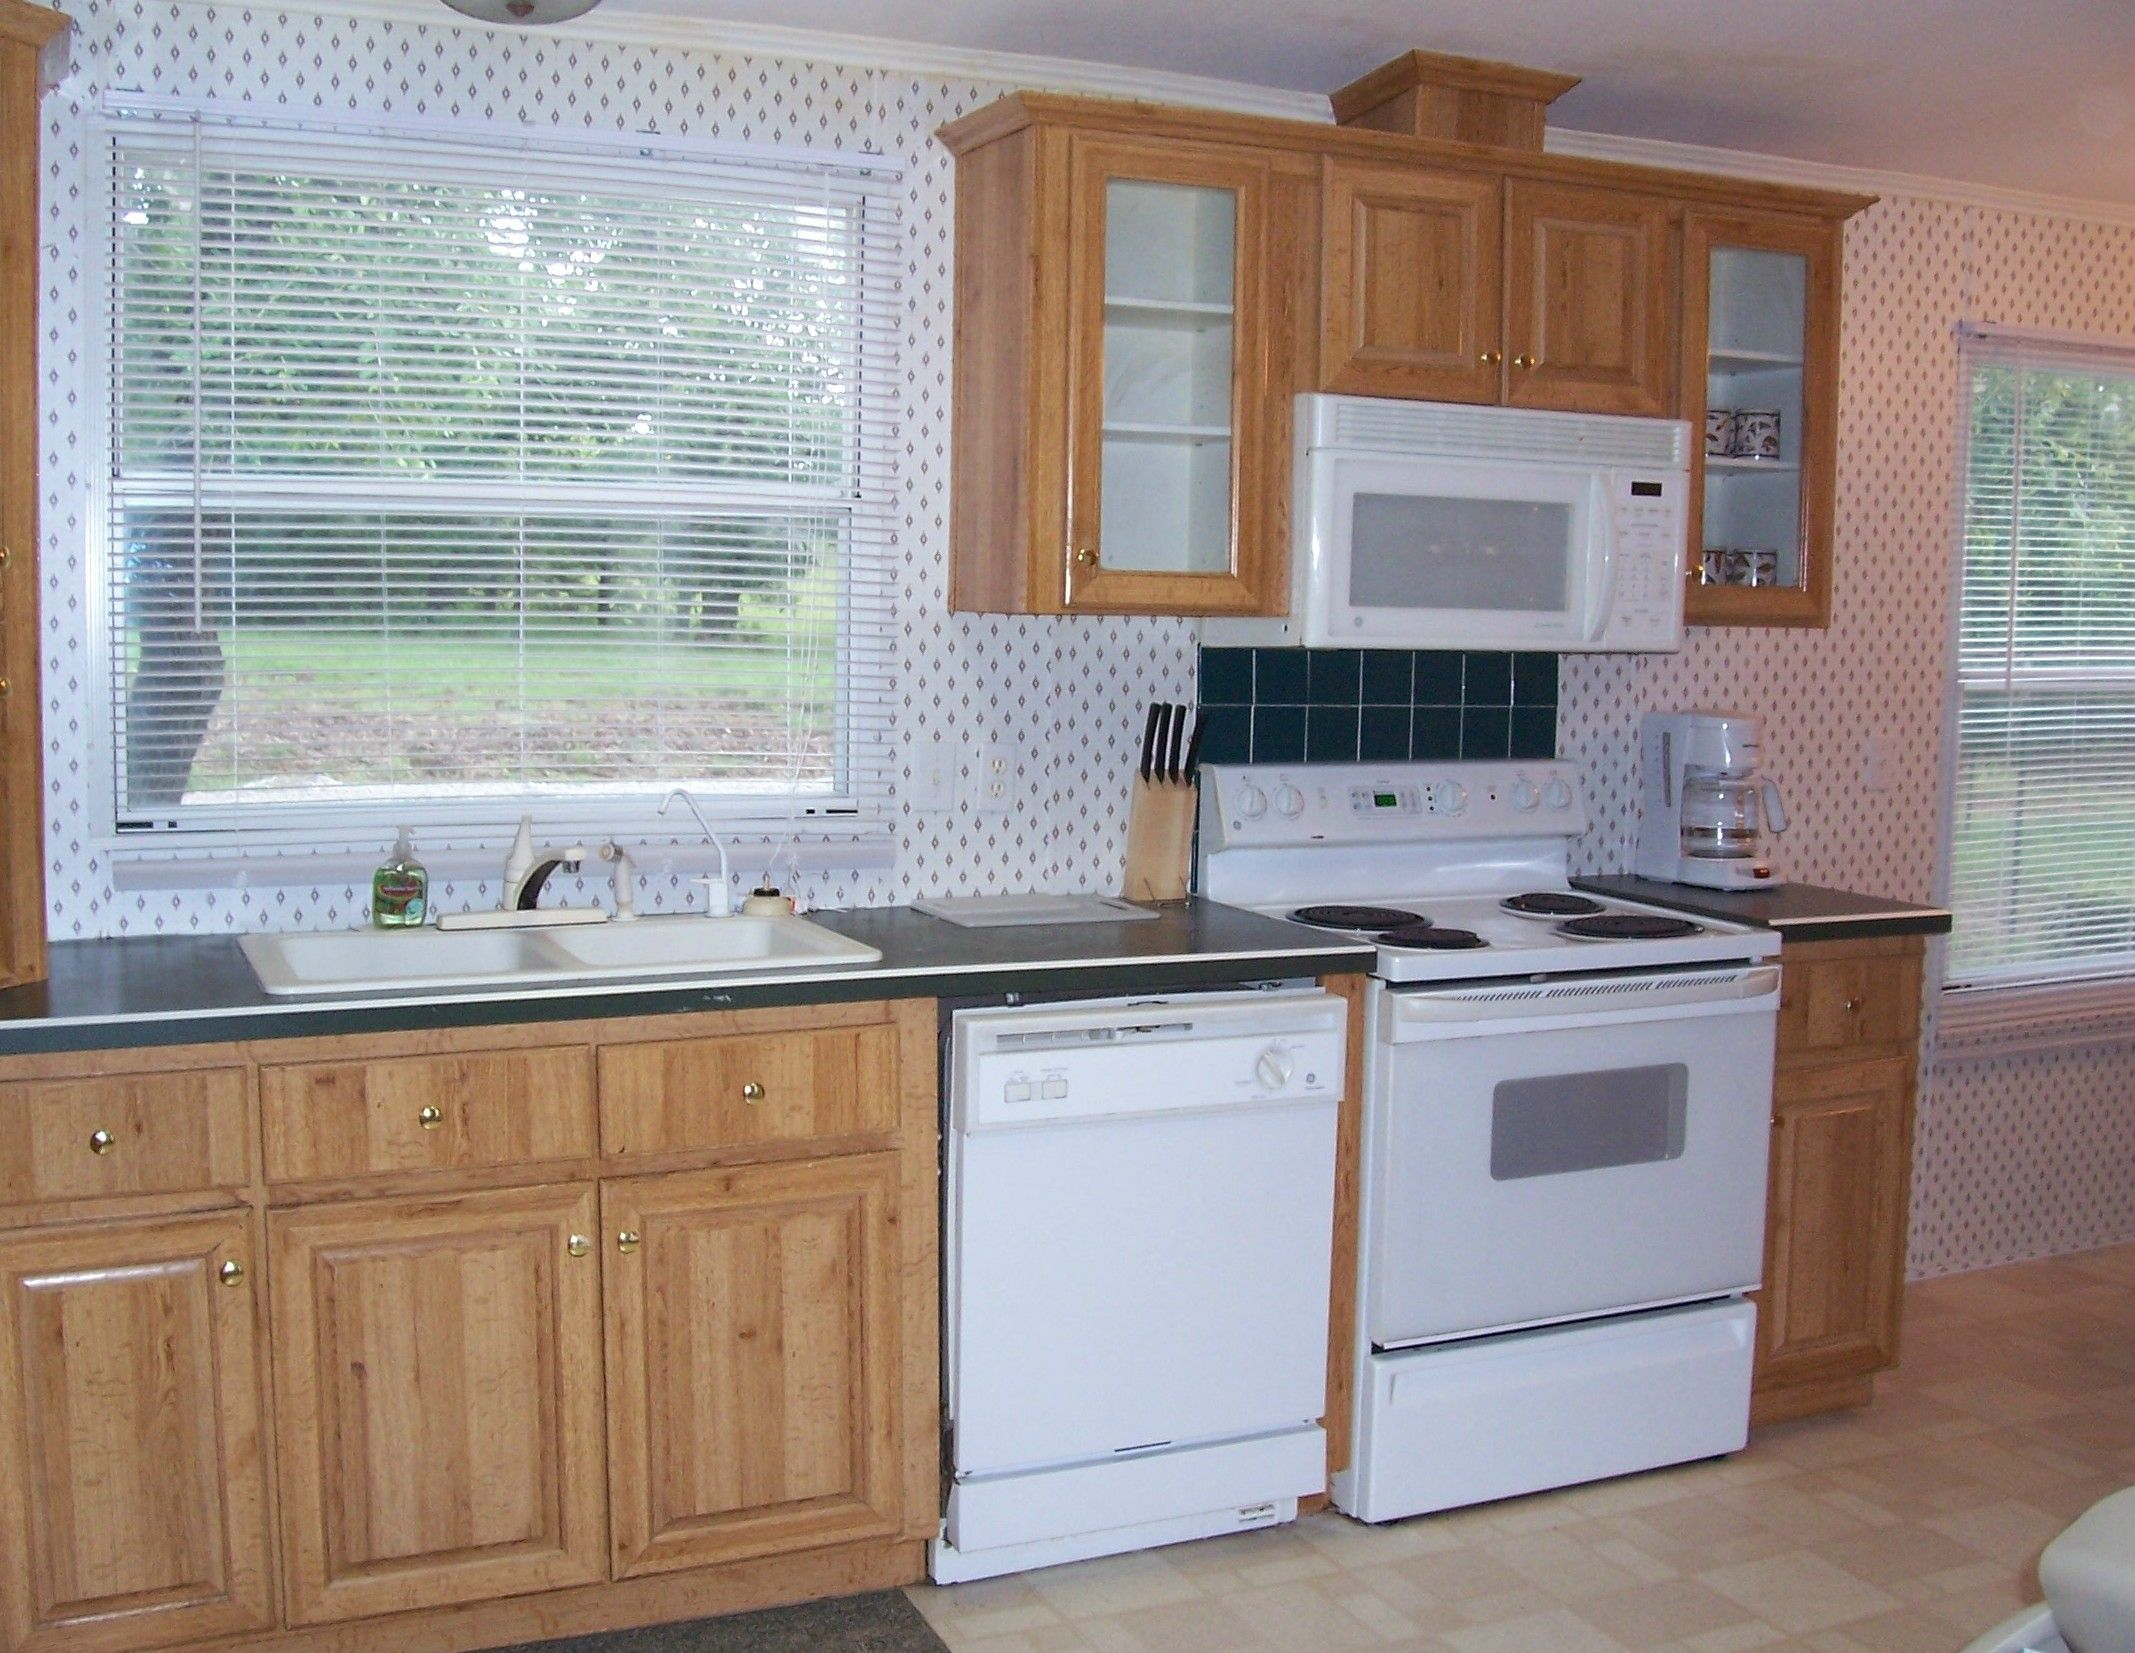 Kitchen Design Dishwasher Placement dishwasher next to stove | for the home | pinterest | dishwashers